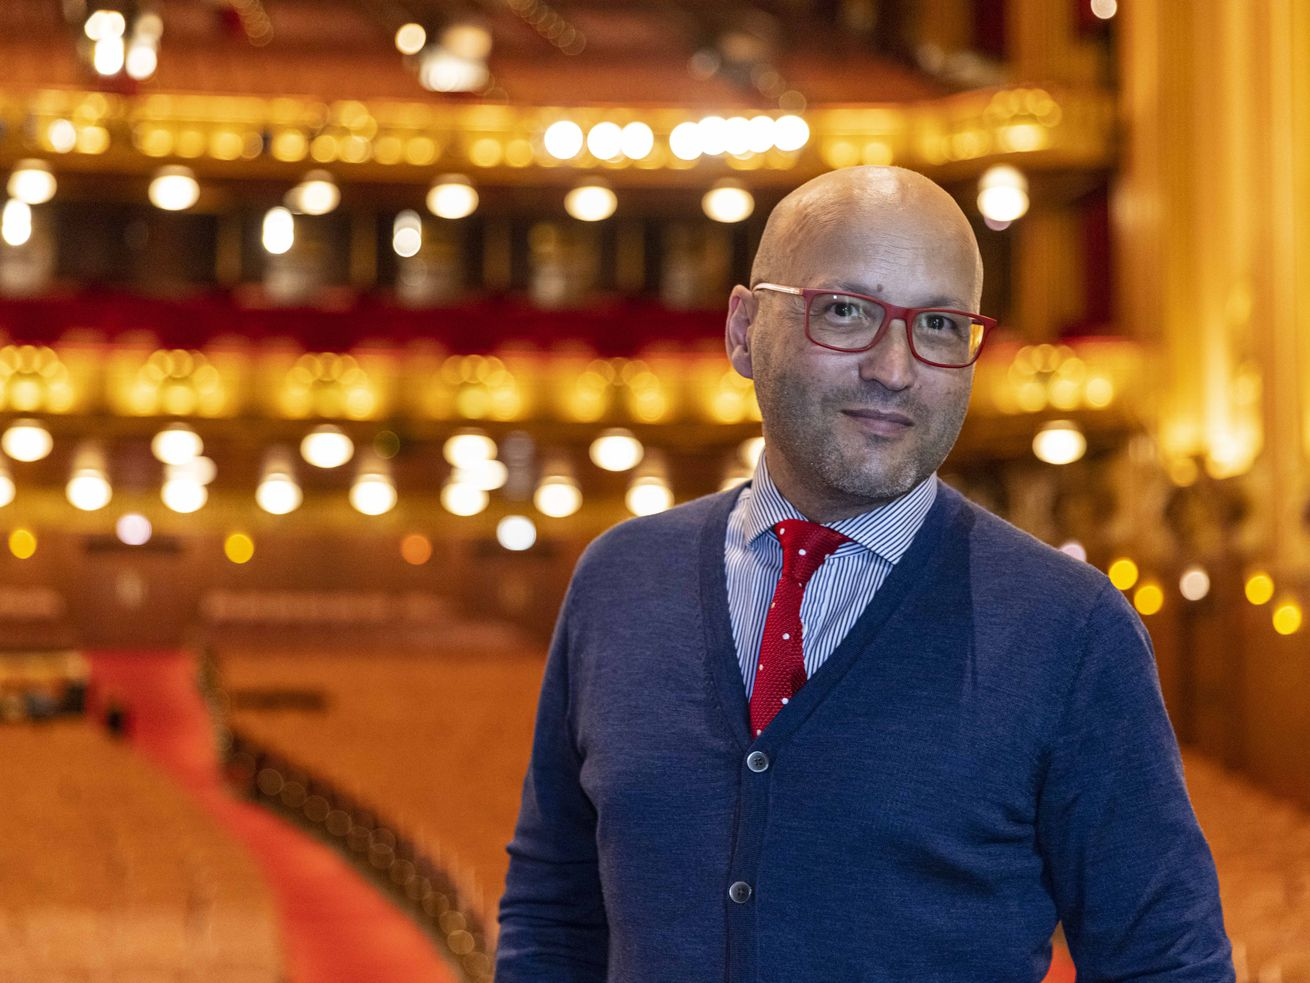 Lyric Opera of Chicago's music director Enrique Mazzola is photographed in August at the Lyric Opera house ahead of the 2021 season opening. Anthony Vazquez/Sun-Times